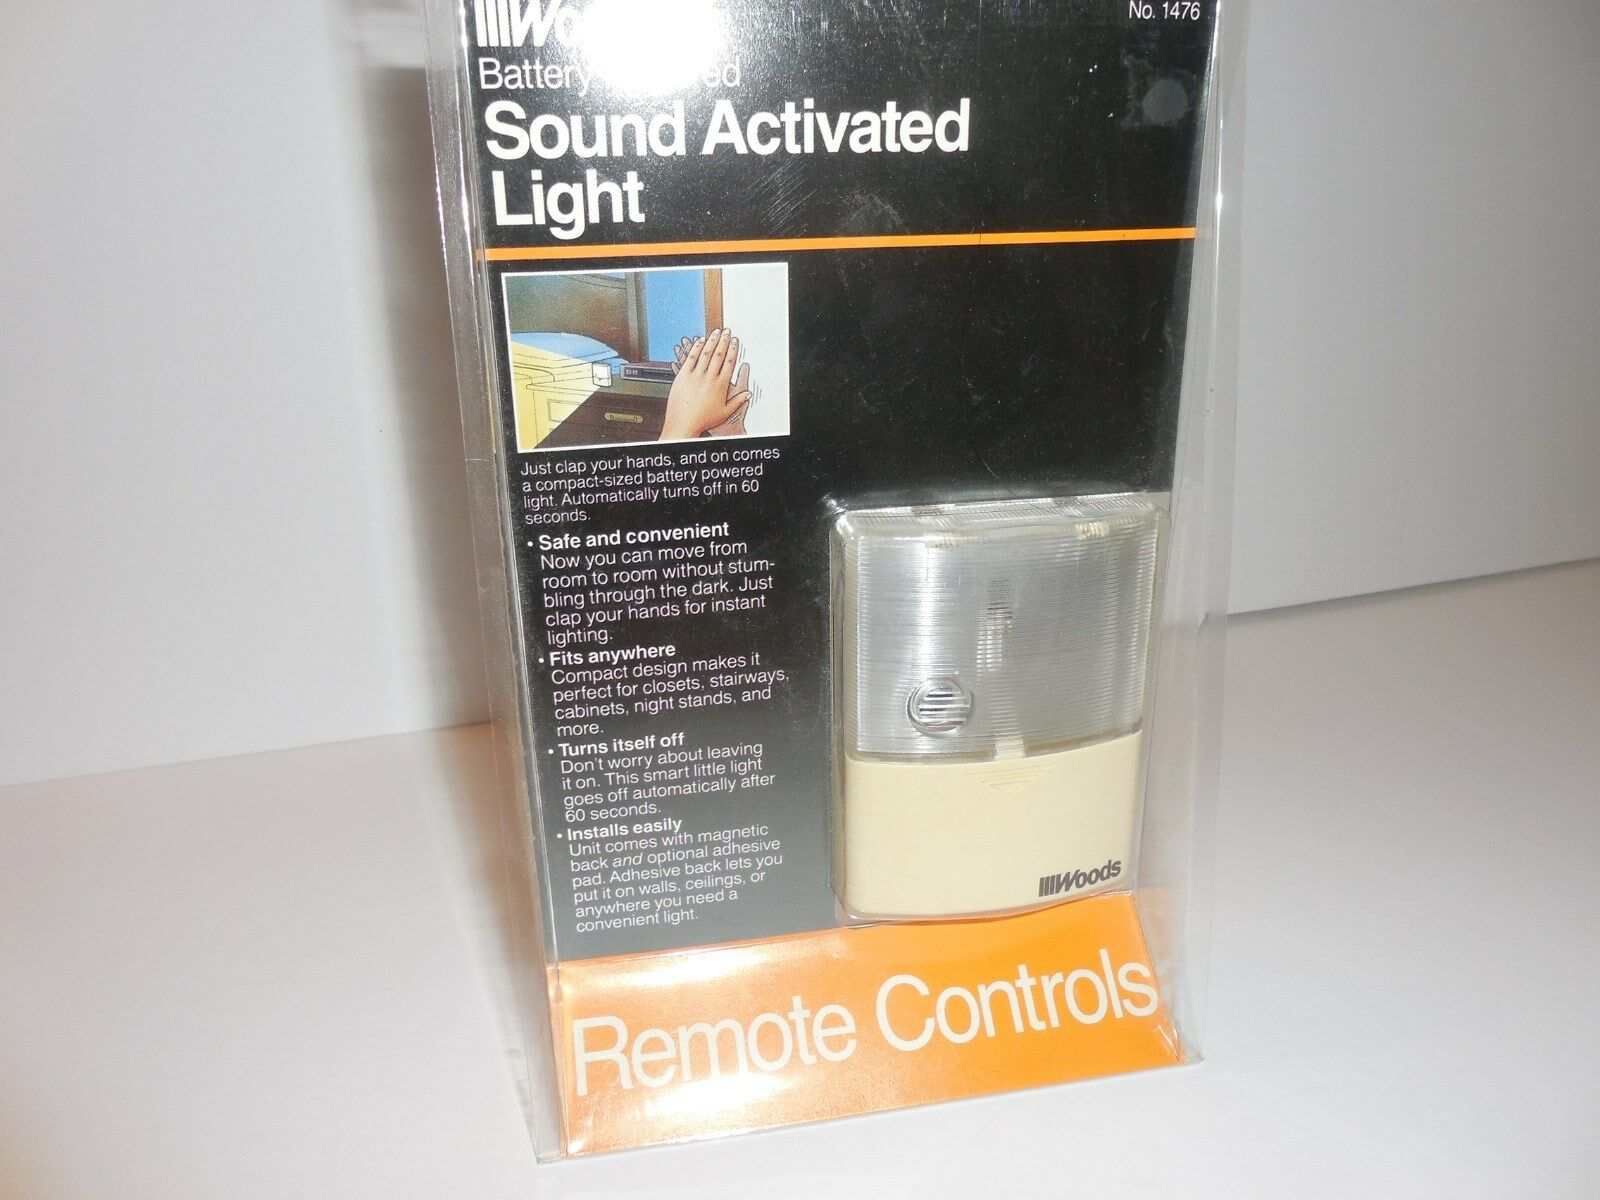 Woods Sound Activated Battery Powered Clap on Light